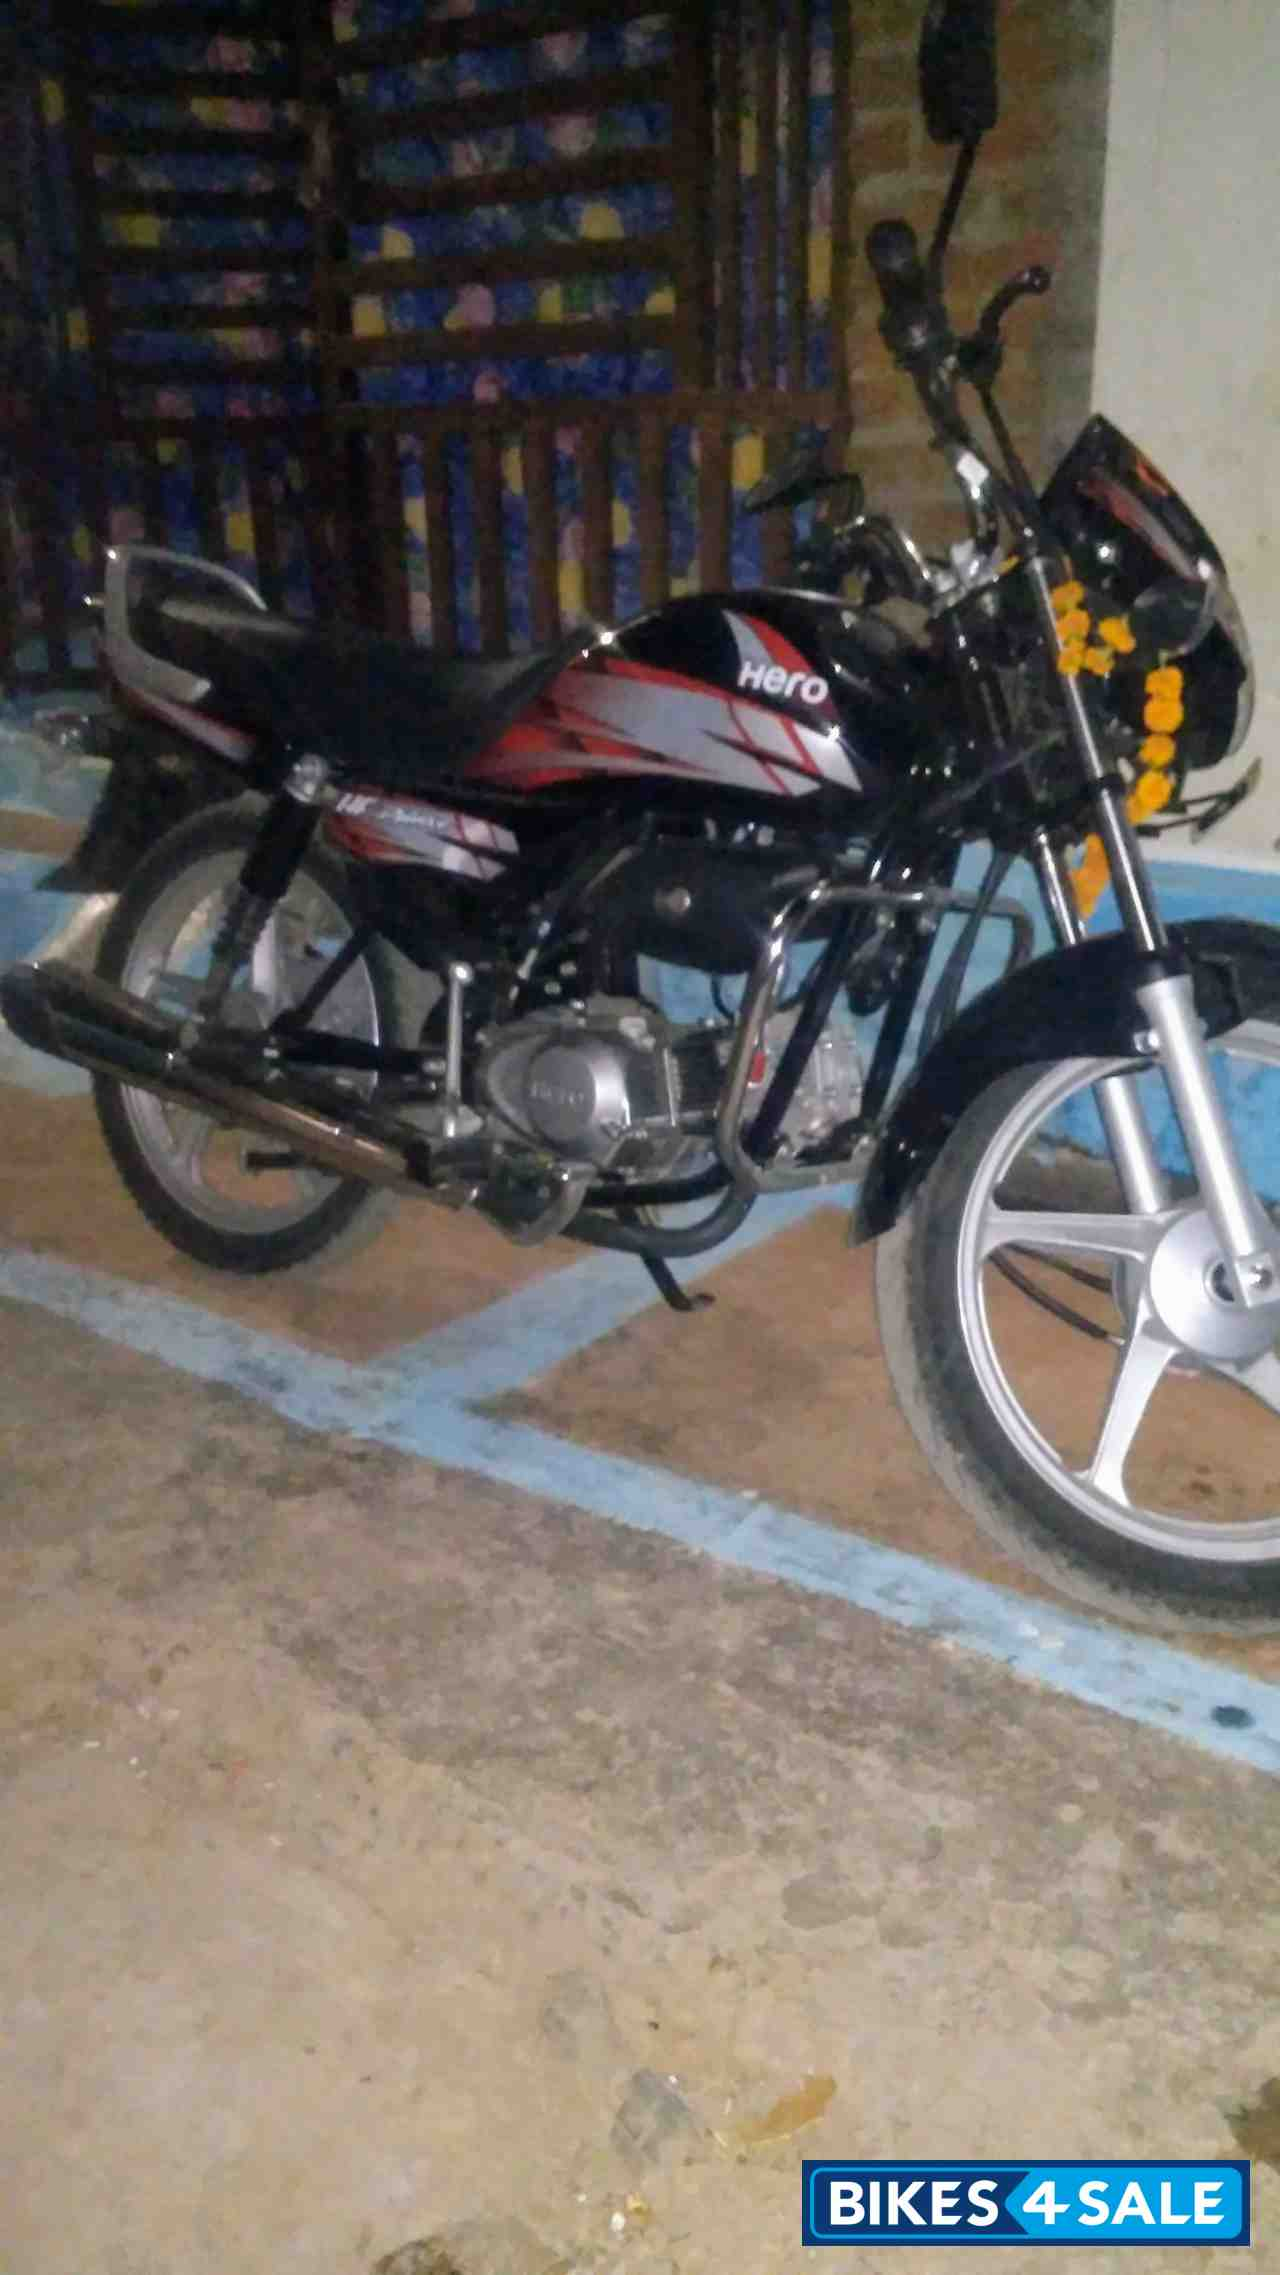 Used 2018 Model Hero Hf Deluxe I3s For Sale In Gwalior Id 225229 Red Black Colour Bikes4sale